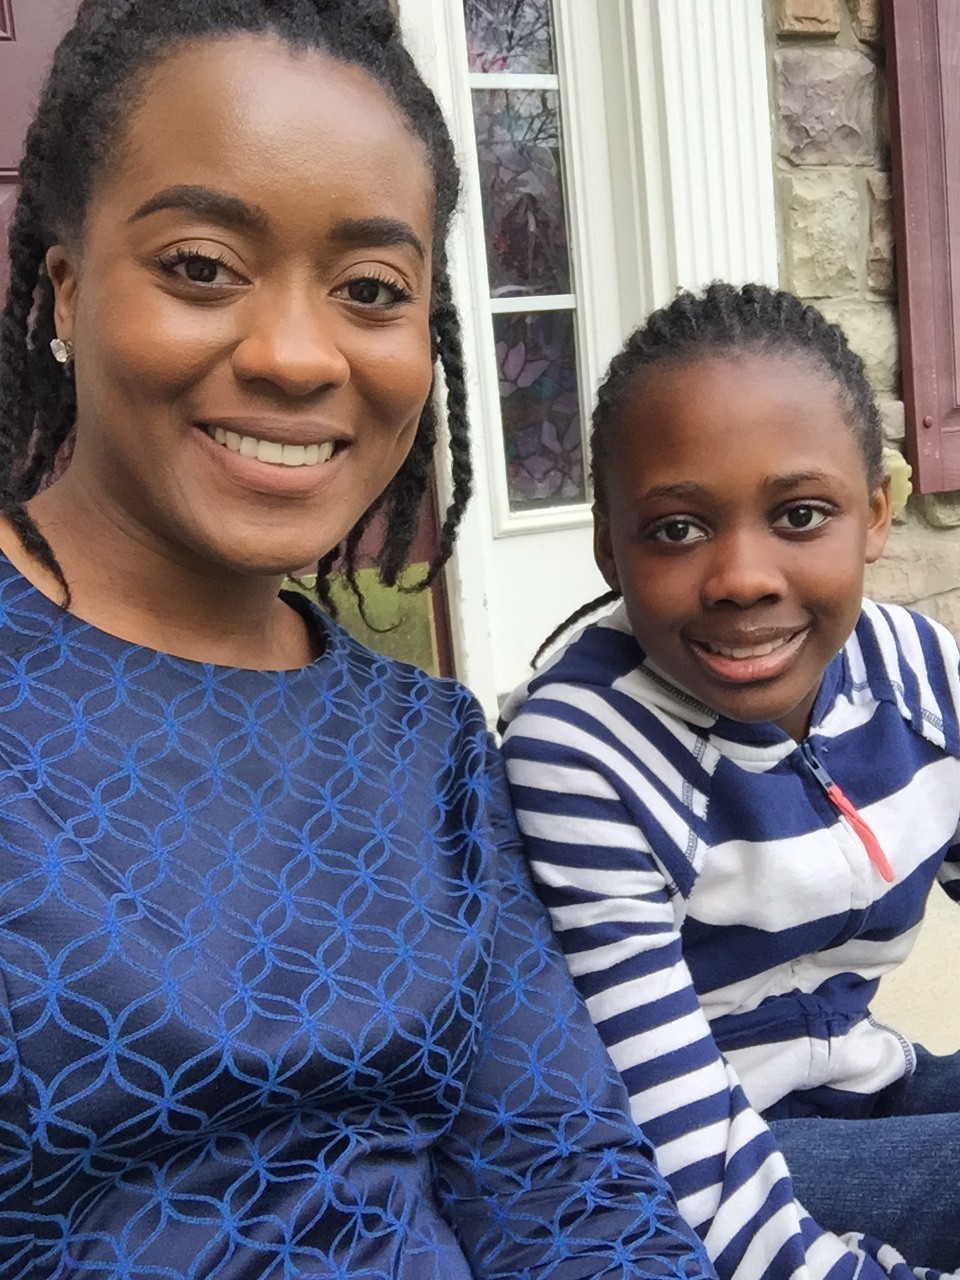 A new twist on an old procedure cures kids with Sickle Cell Disease